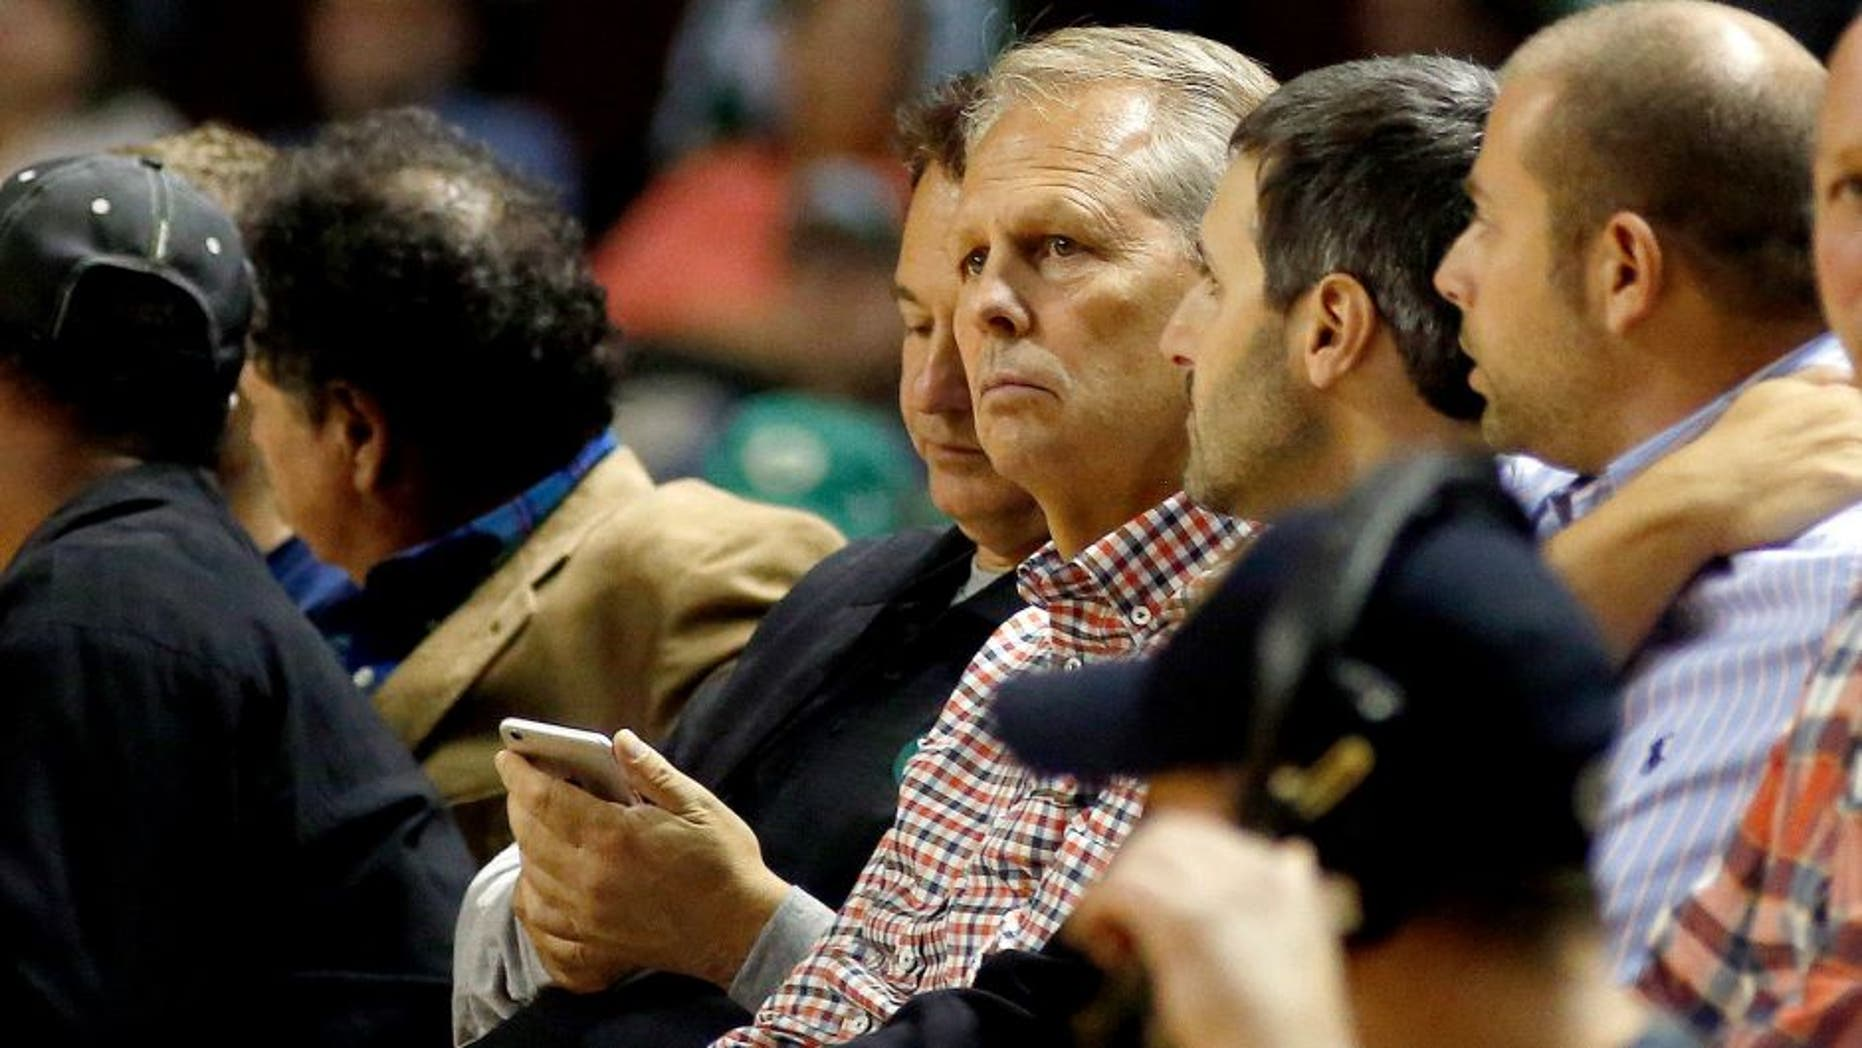 PORTLAND, ME - OCTOBER 15: Danny Ainge, general manager of the Boston Celtics, sits on the sidelines during a pre-season NBA basketball game at the Cross Insurance Arena, Wednesday, October 15, 2014. (Photo by Gabe Souza/Portland Press Herald via Getty Images)